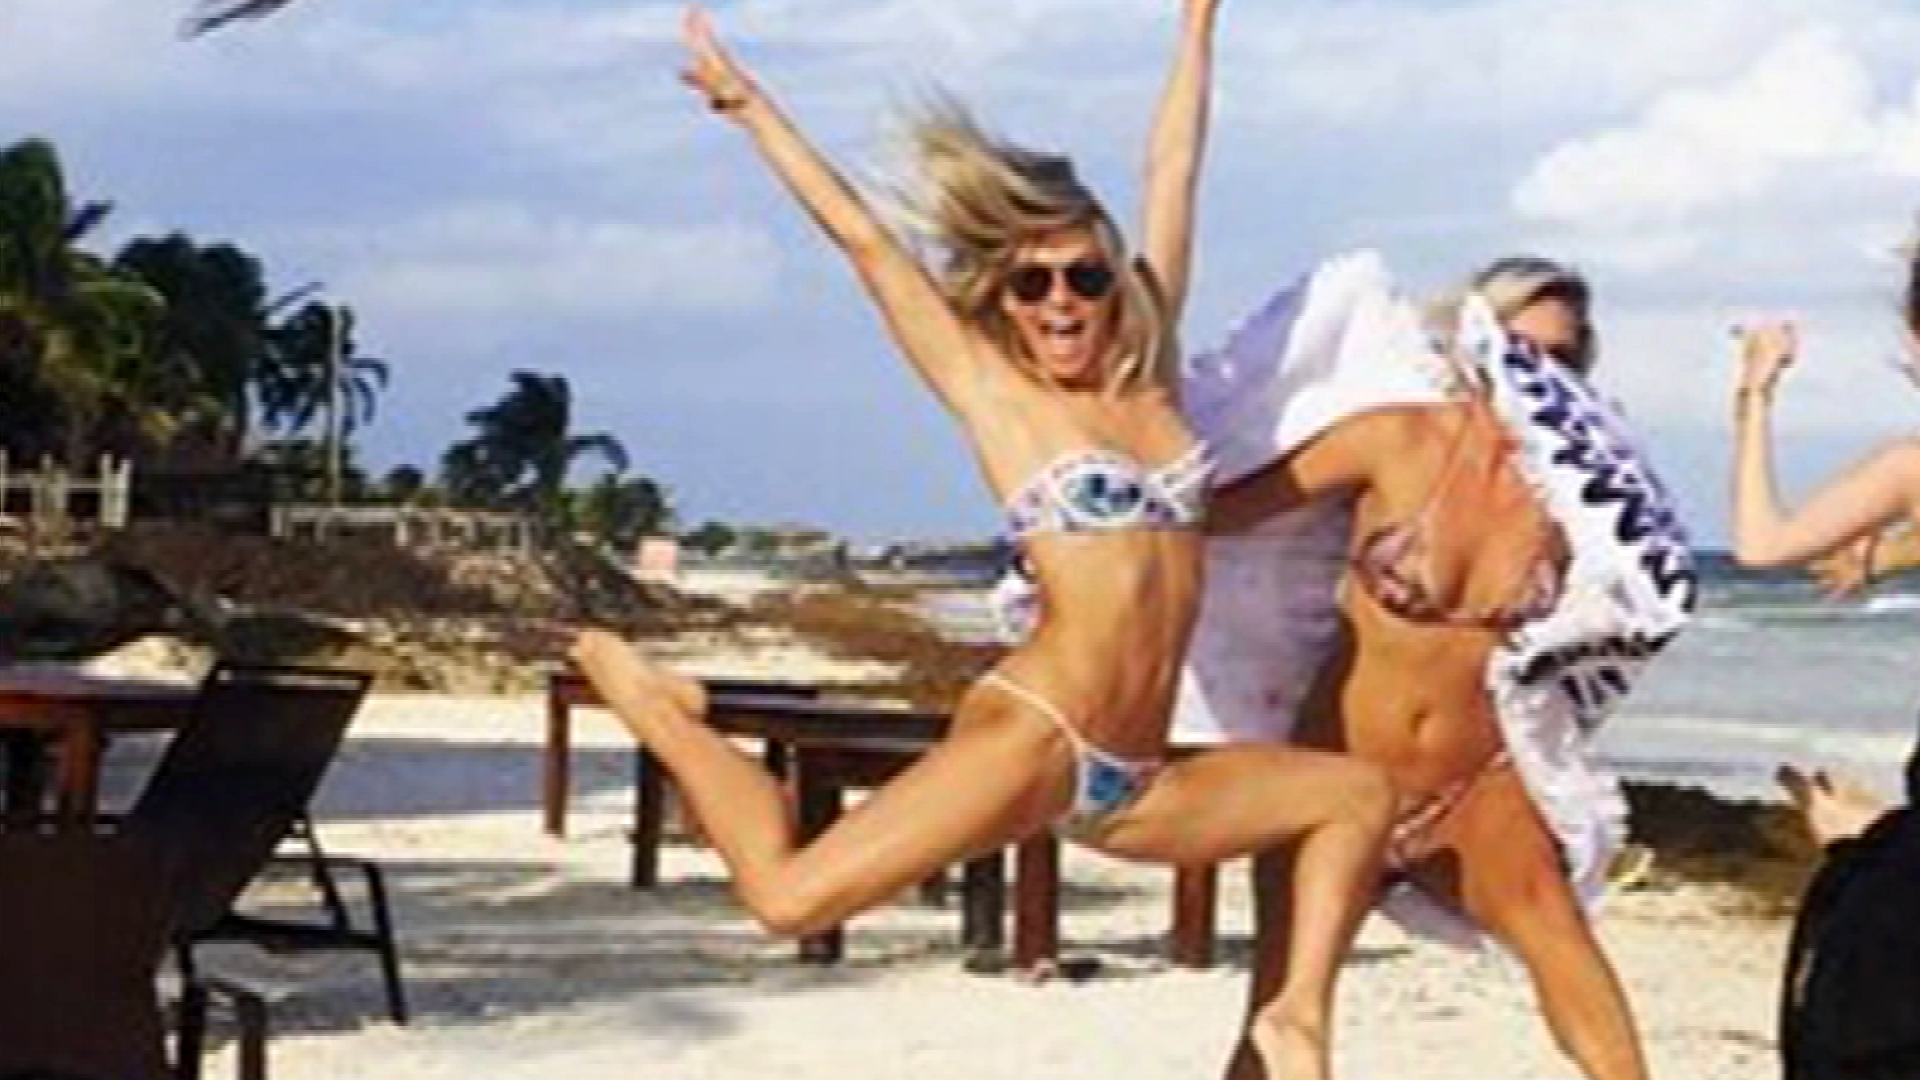 Julianne Hough Takes Her Bikini to New Heights